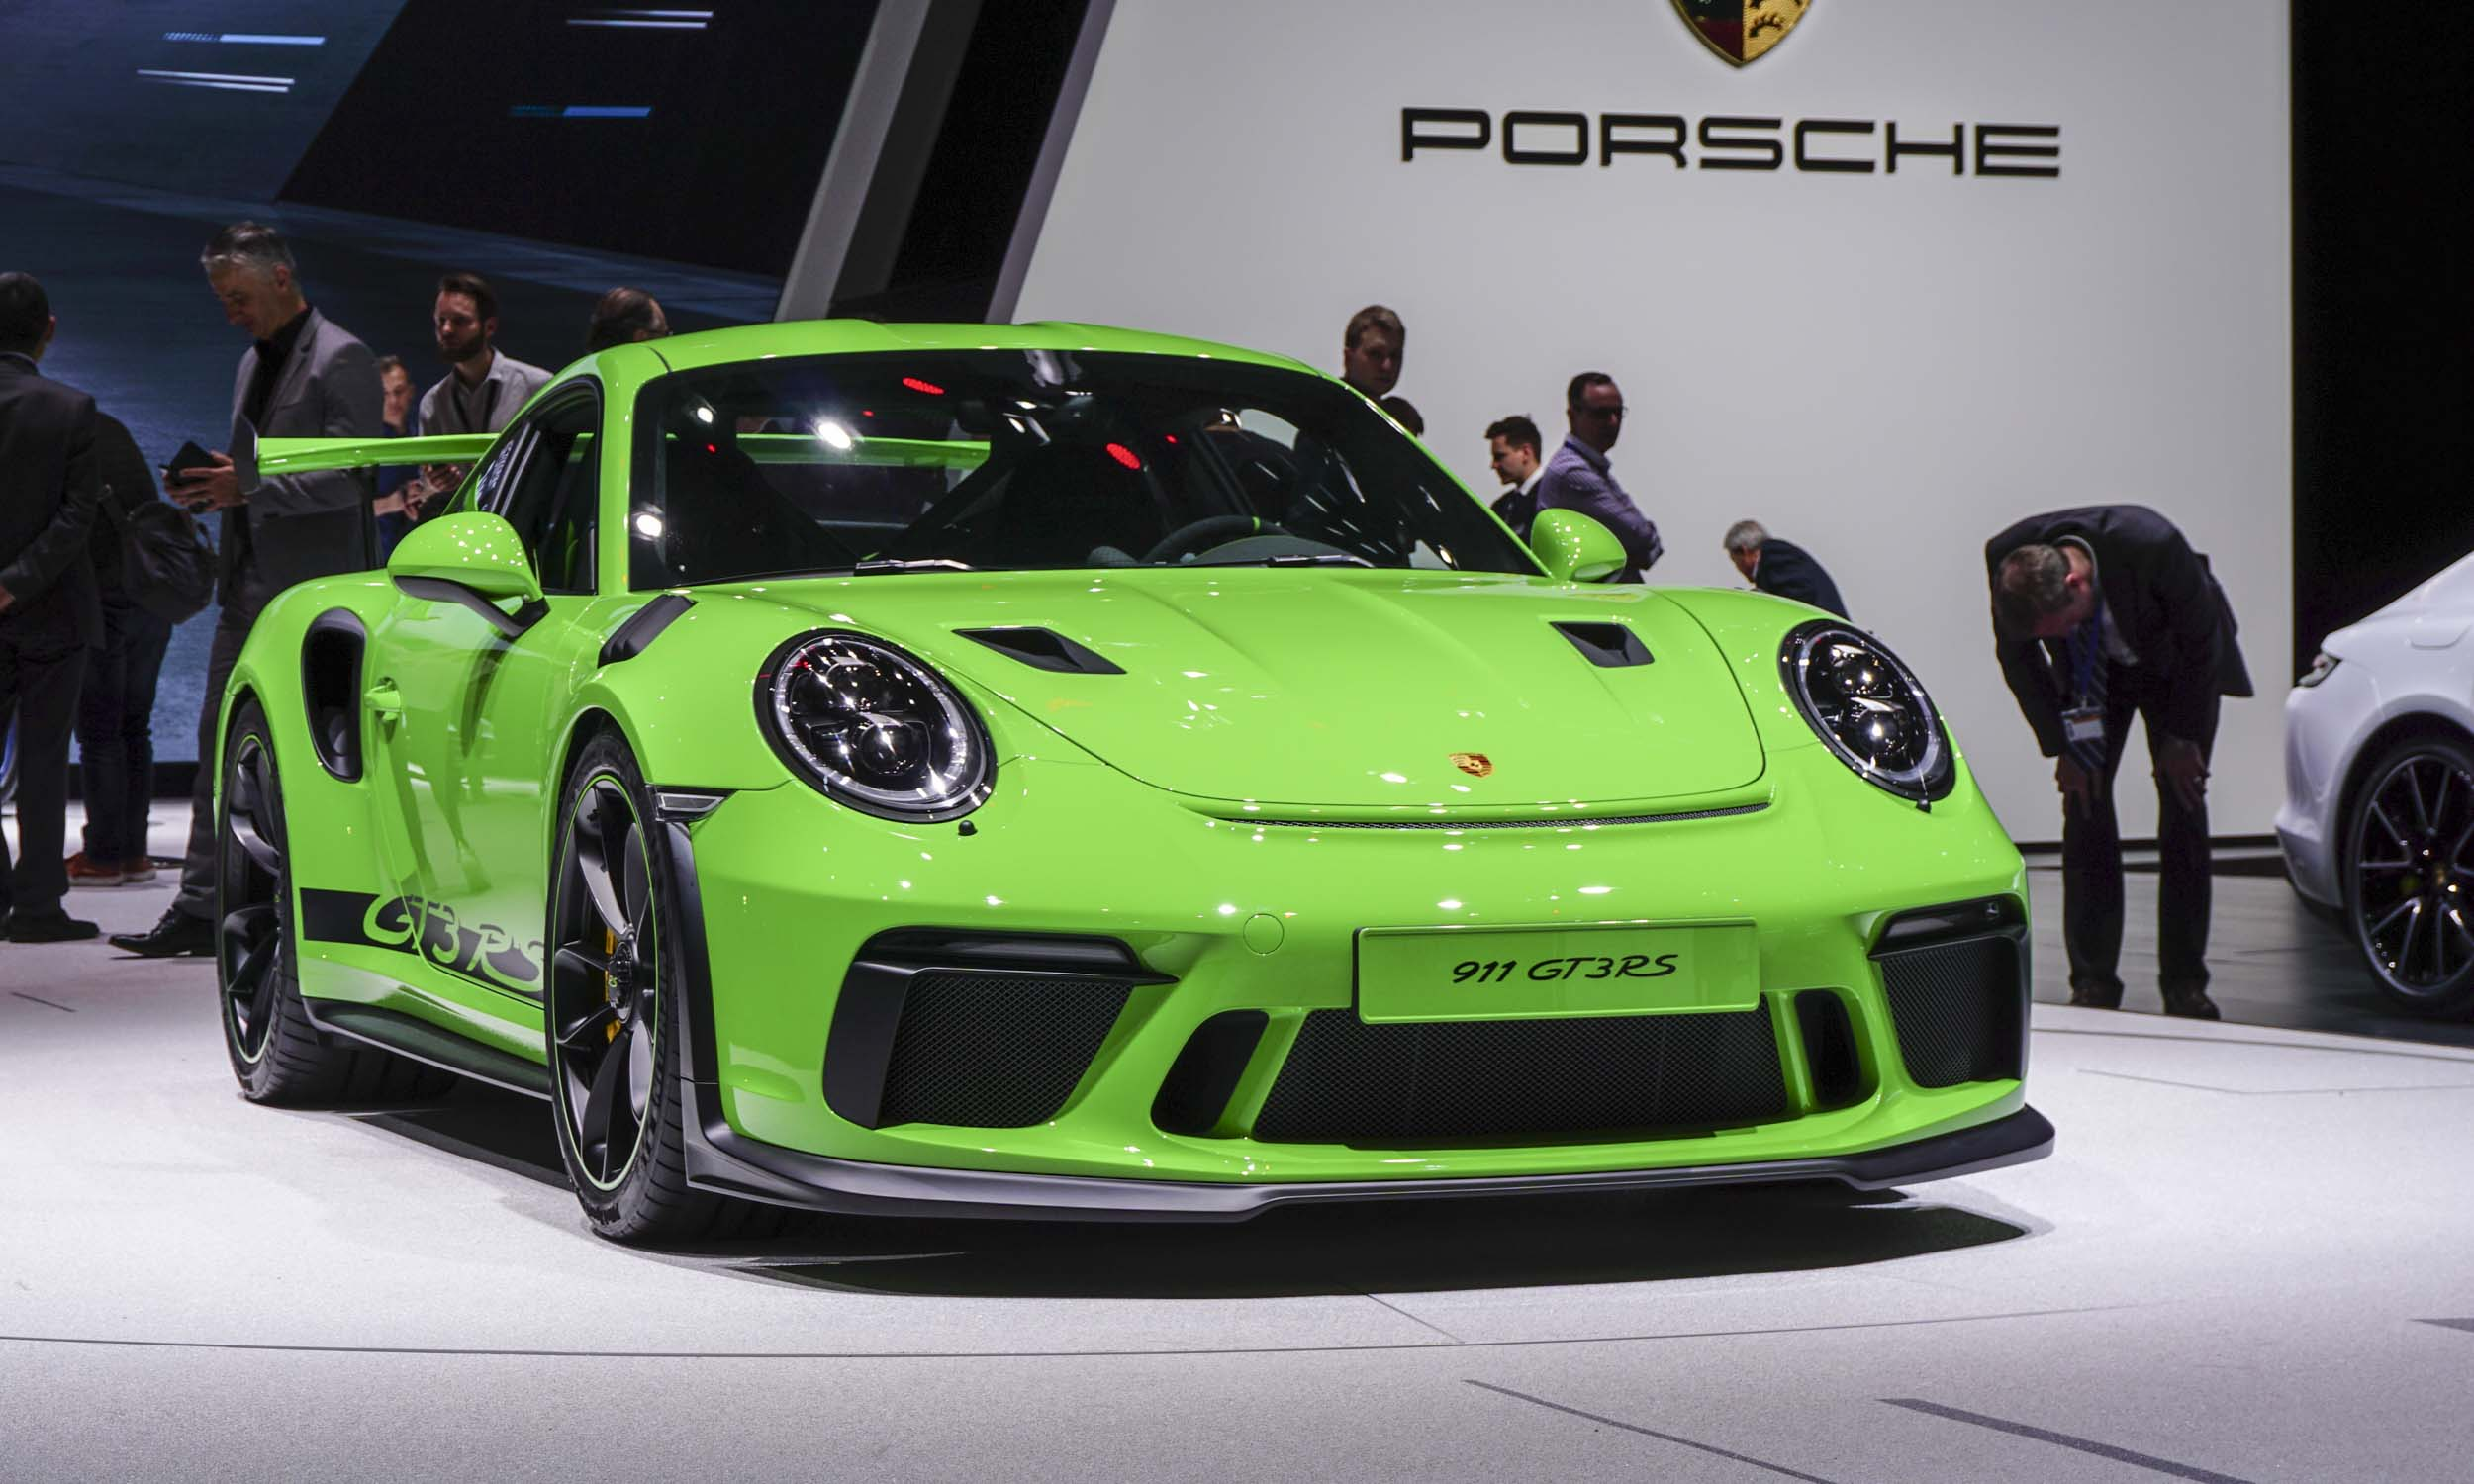 2018 geneva motor show 2019 porsche 911 gt3 rs autonxt. Black Bedroom Furniture Sets. Home Design Ideas